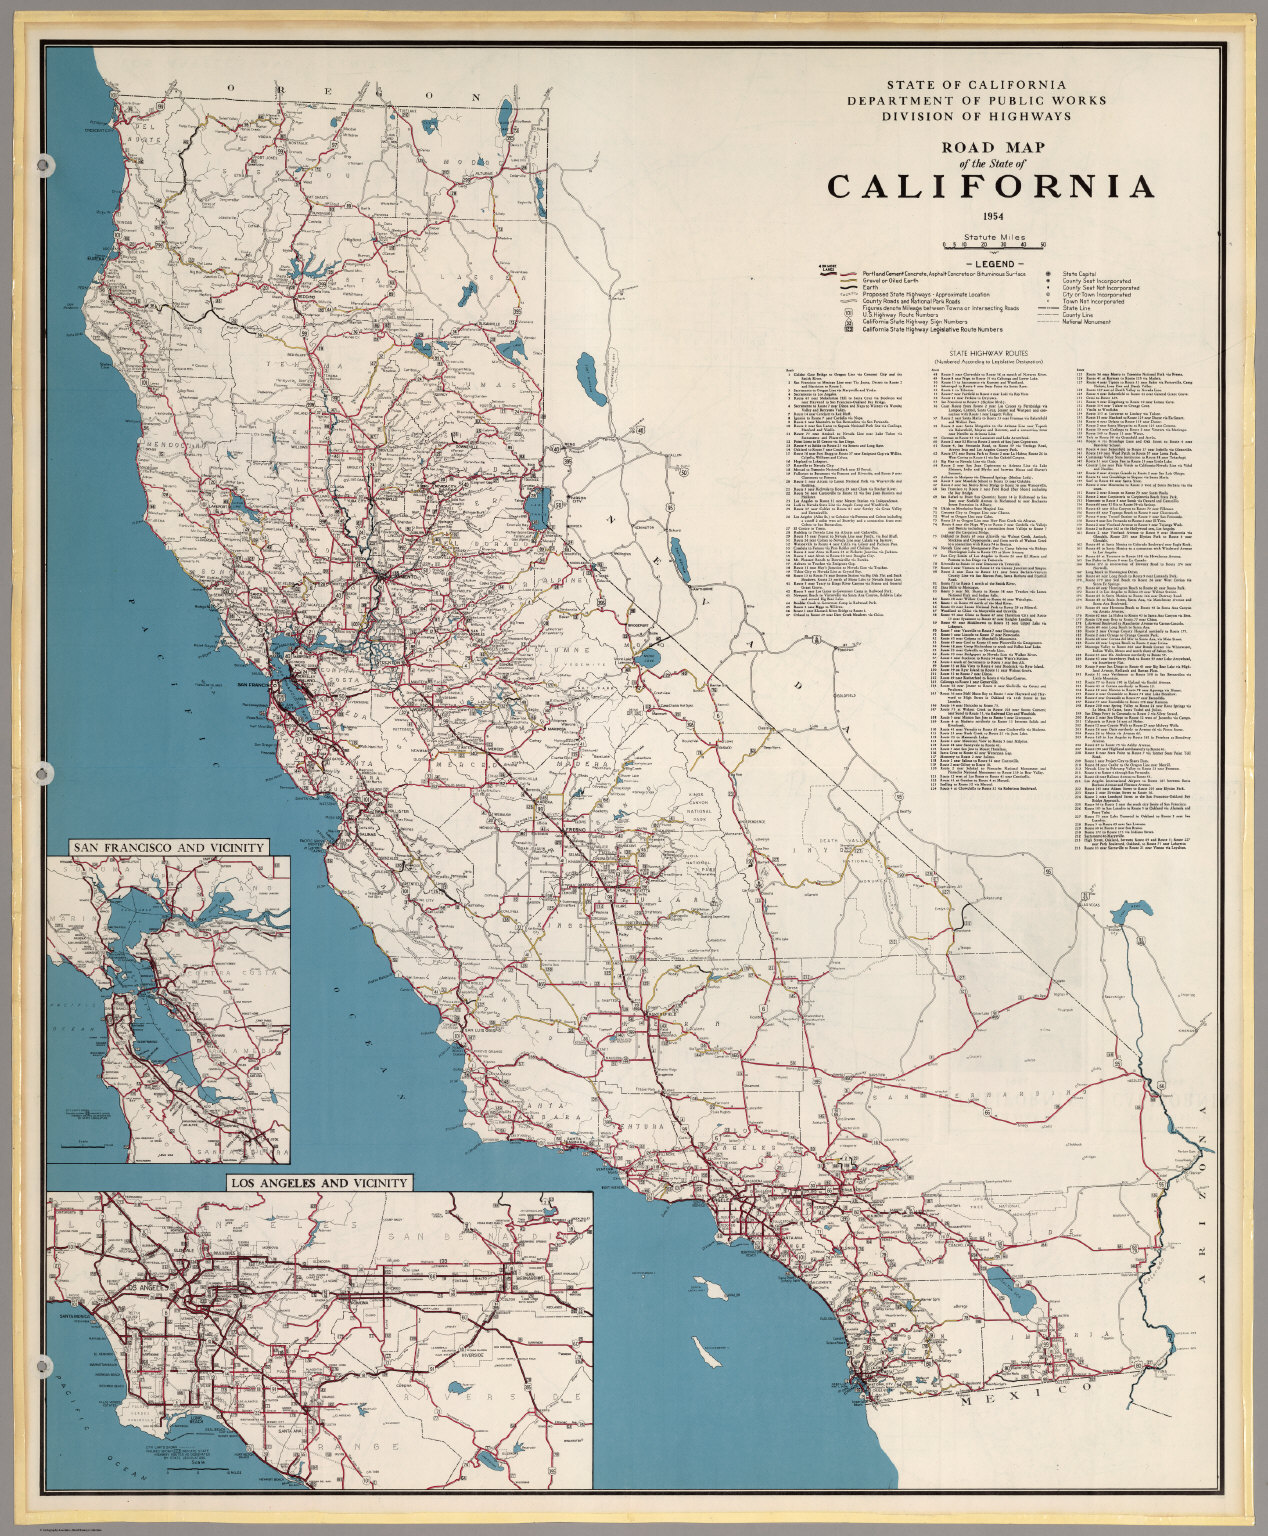 Road Map of the State of California, 1954.